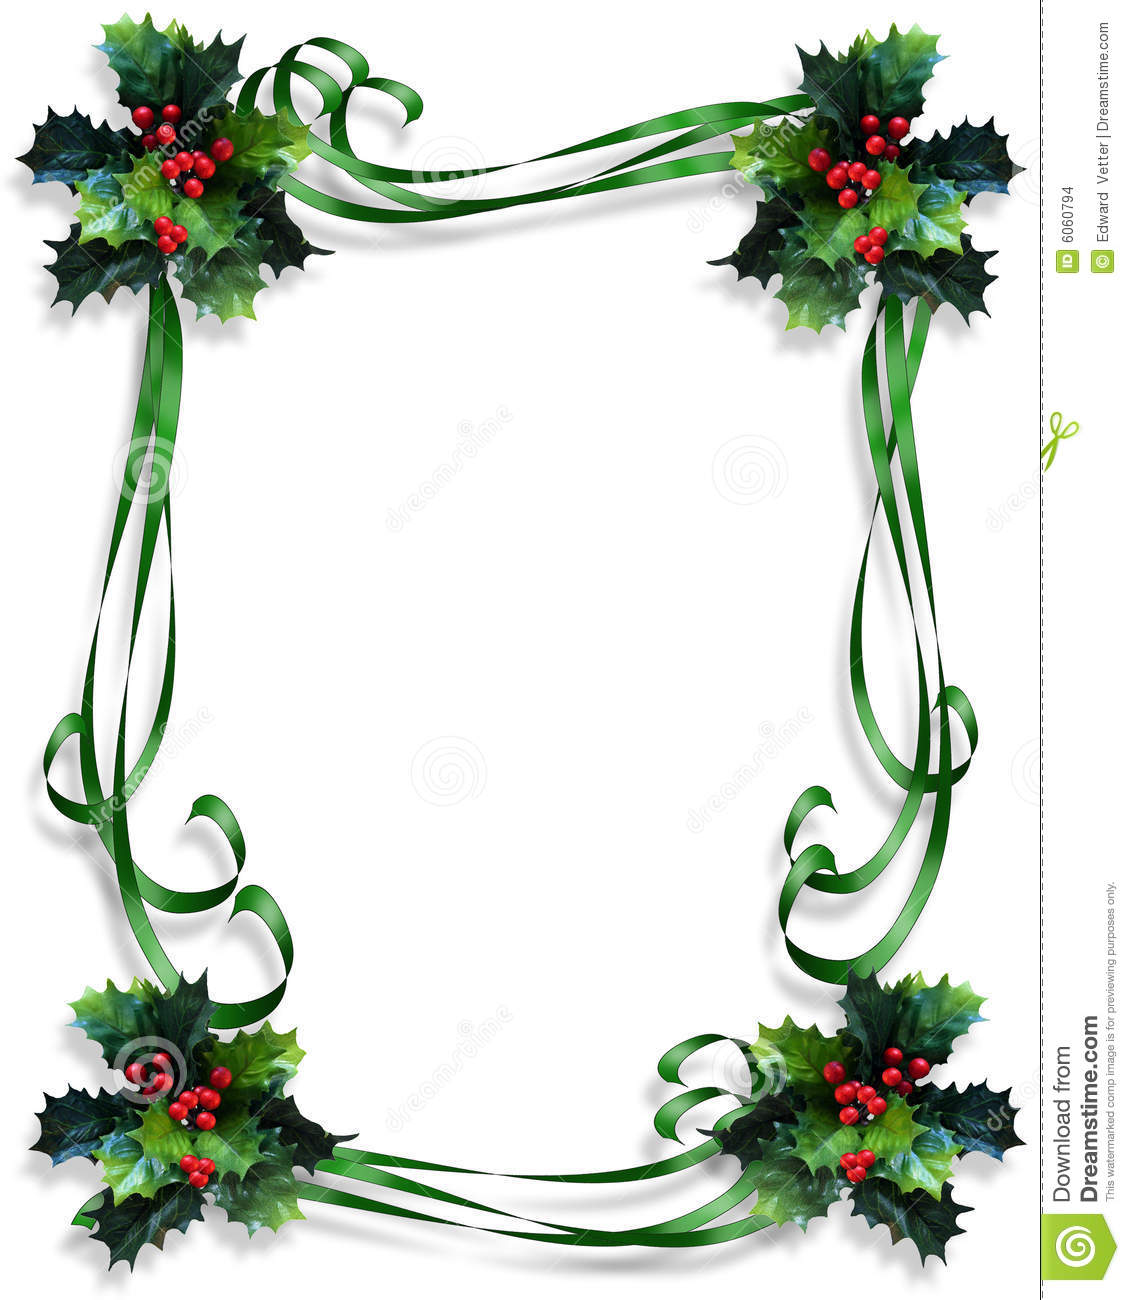 Christmas border holly and ribbons frame stock